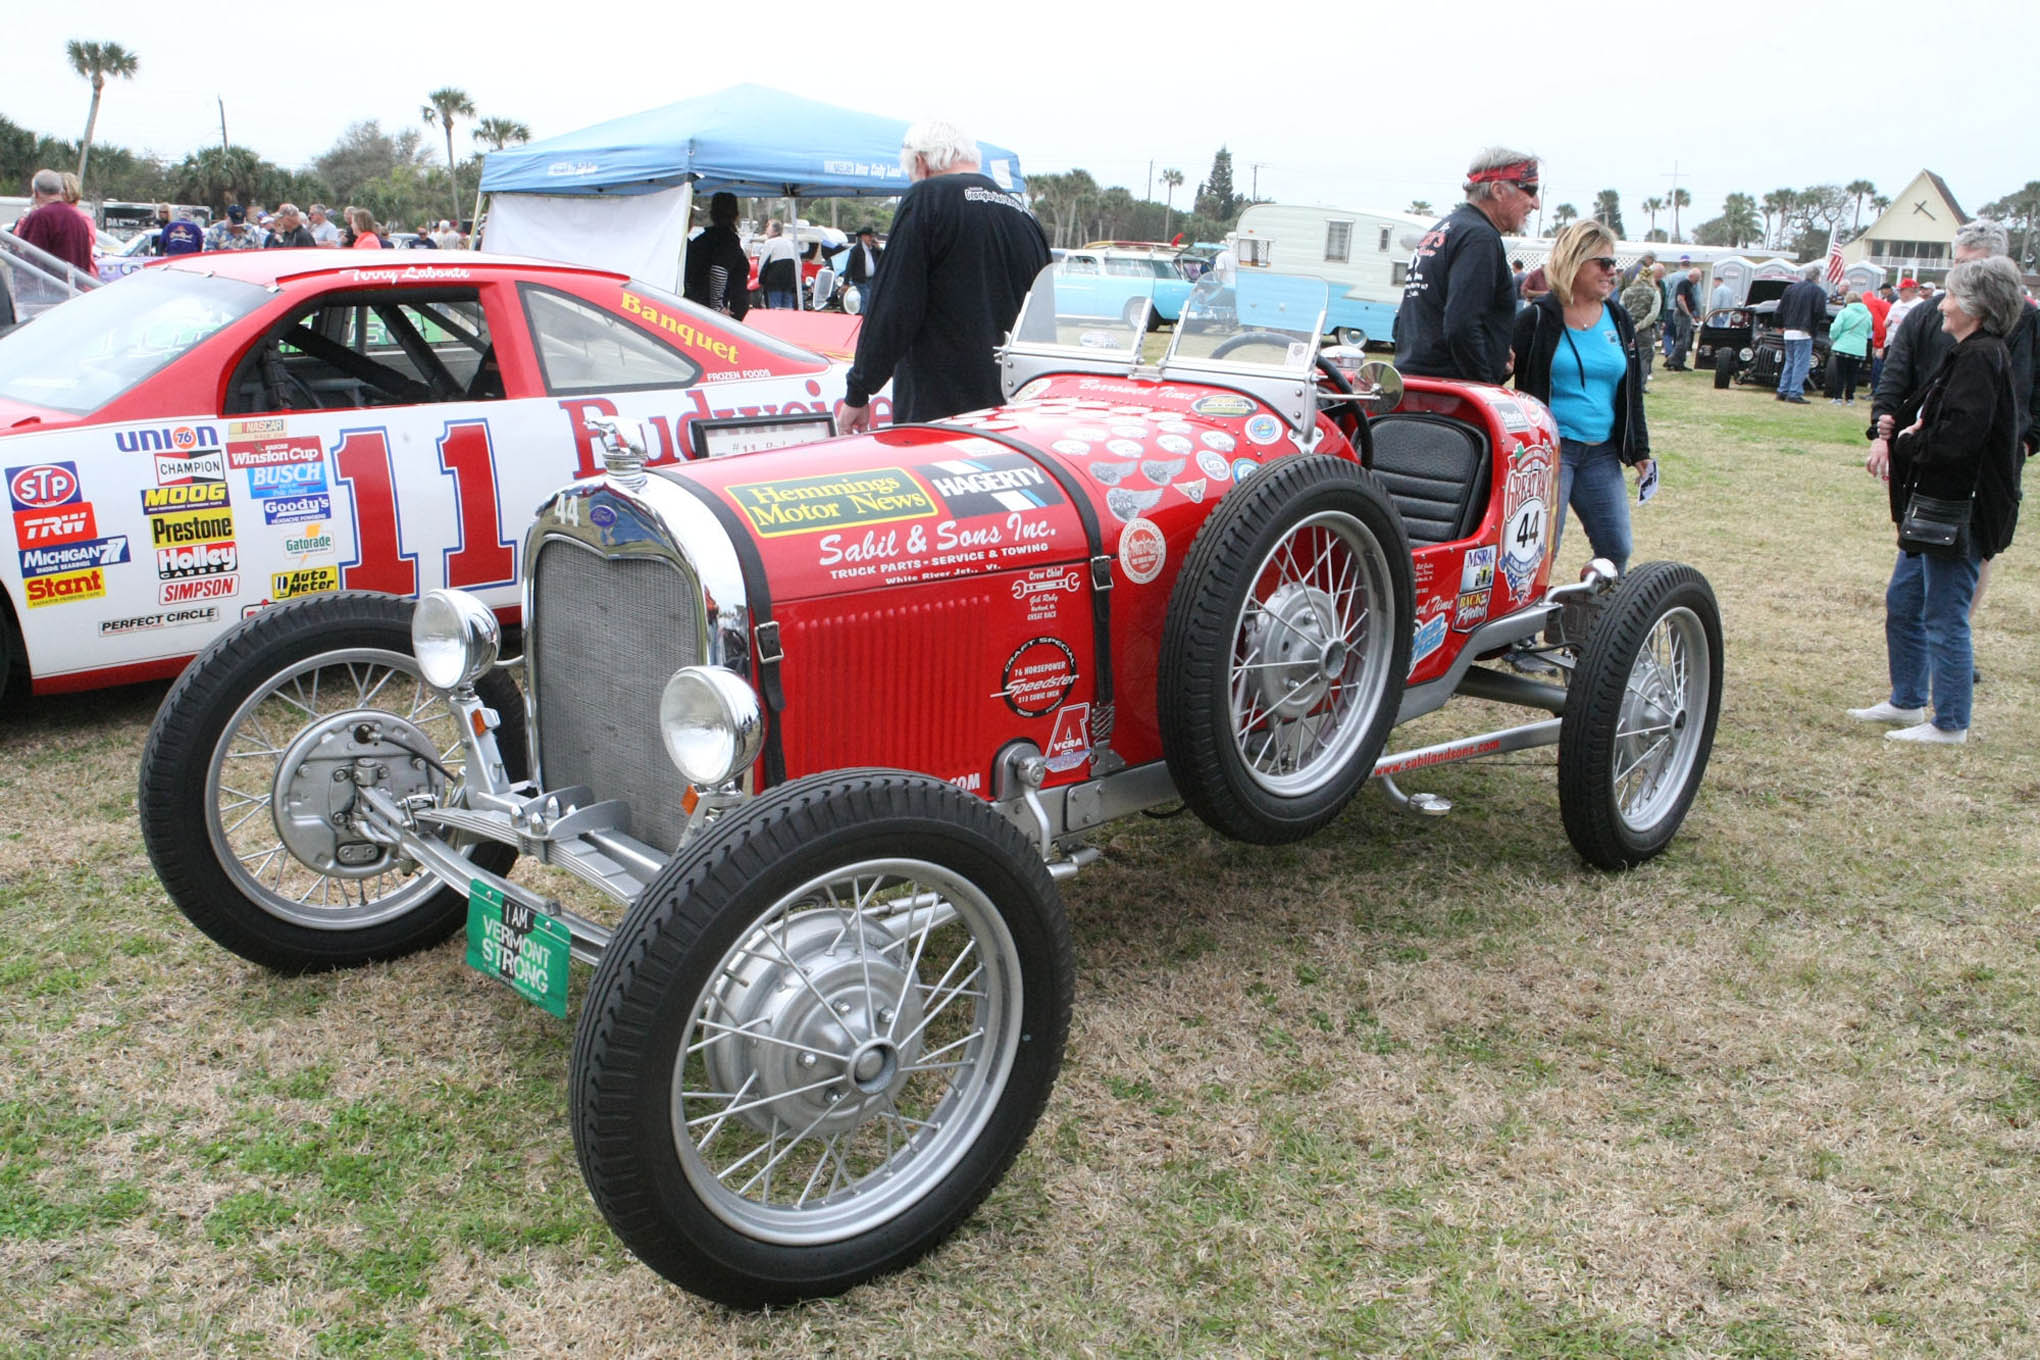 At the back of this old restored open wheel jalopy stands Open Wheel racer and Little 500 winner Bentley Warren sharing a laugh and story with some race fans.